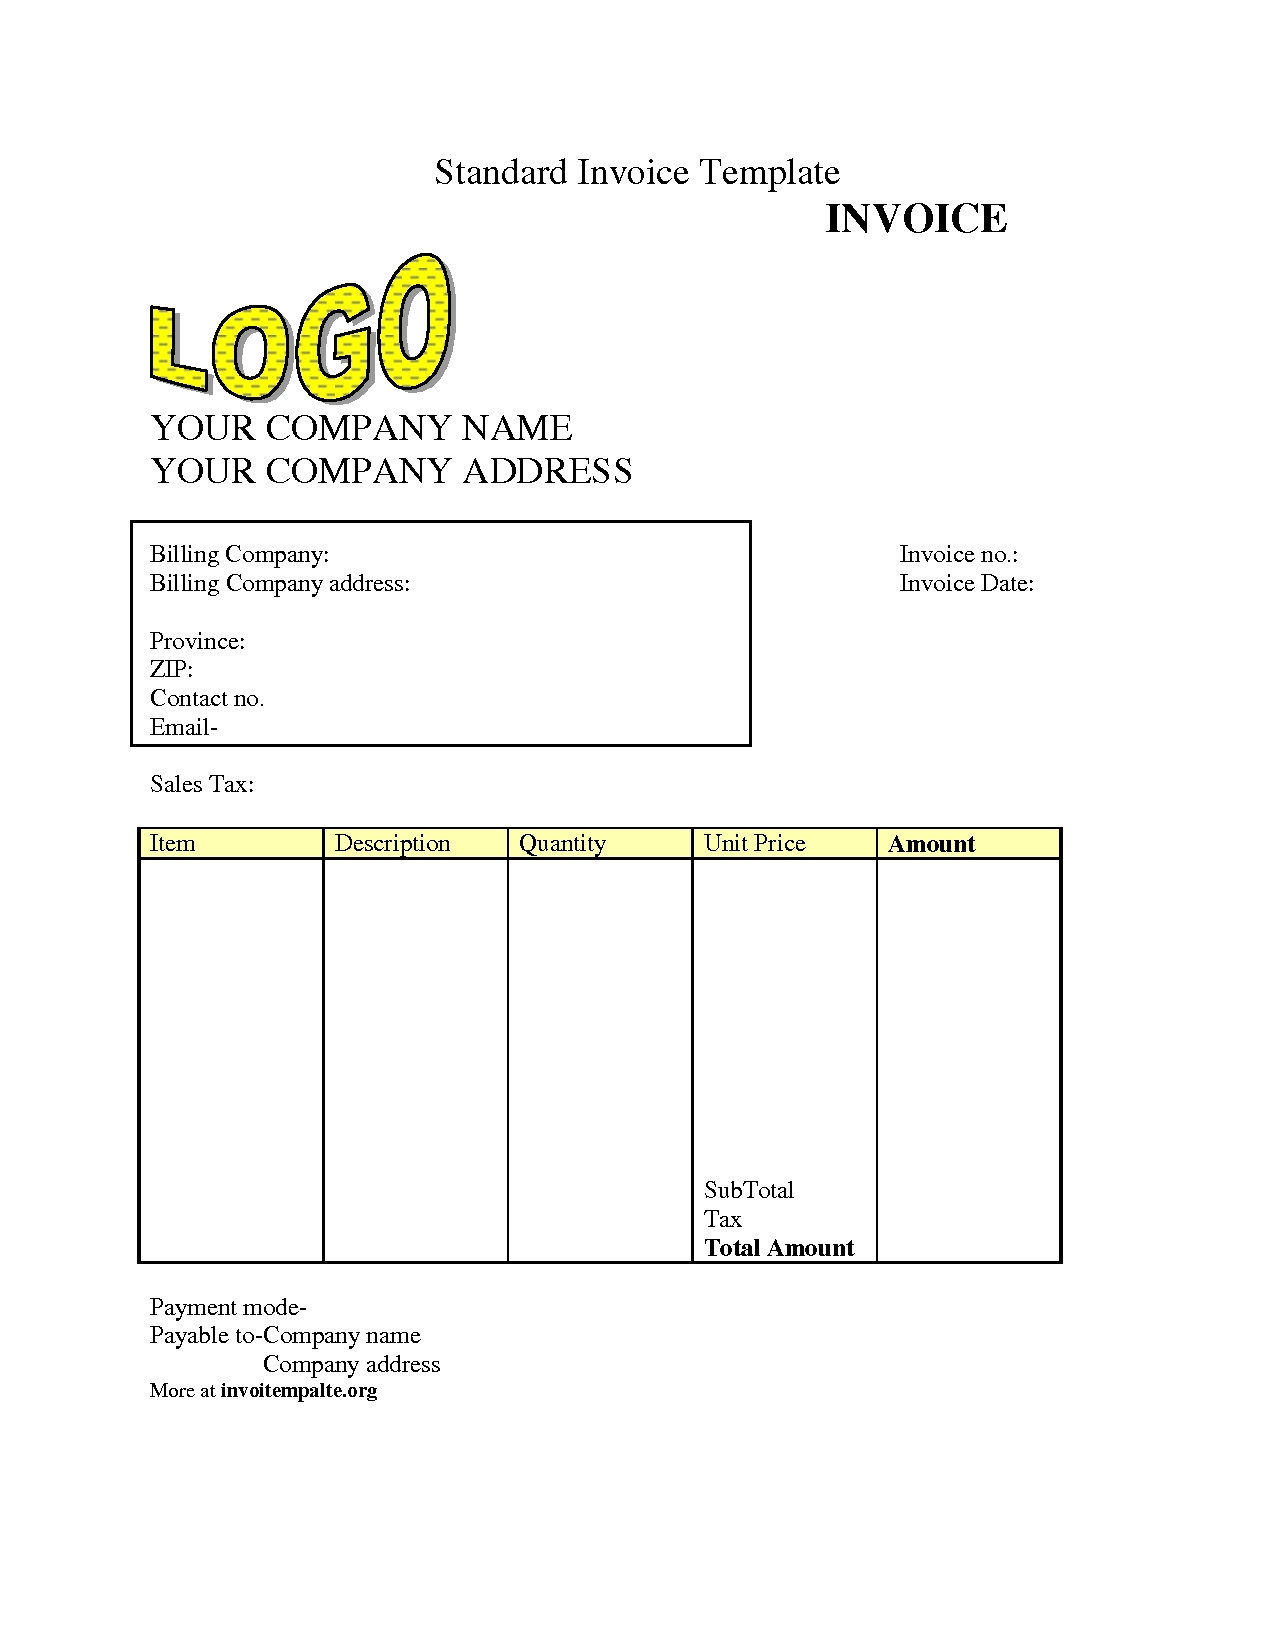 free invoice template download free invoice template downloads invoice template free 2016 1275 X 1650